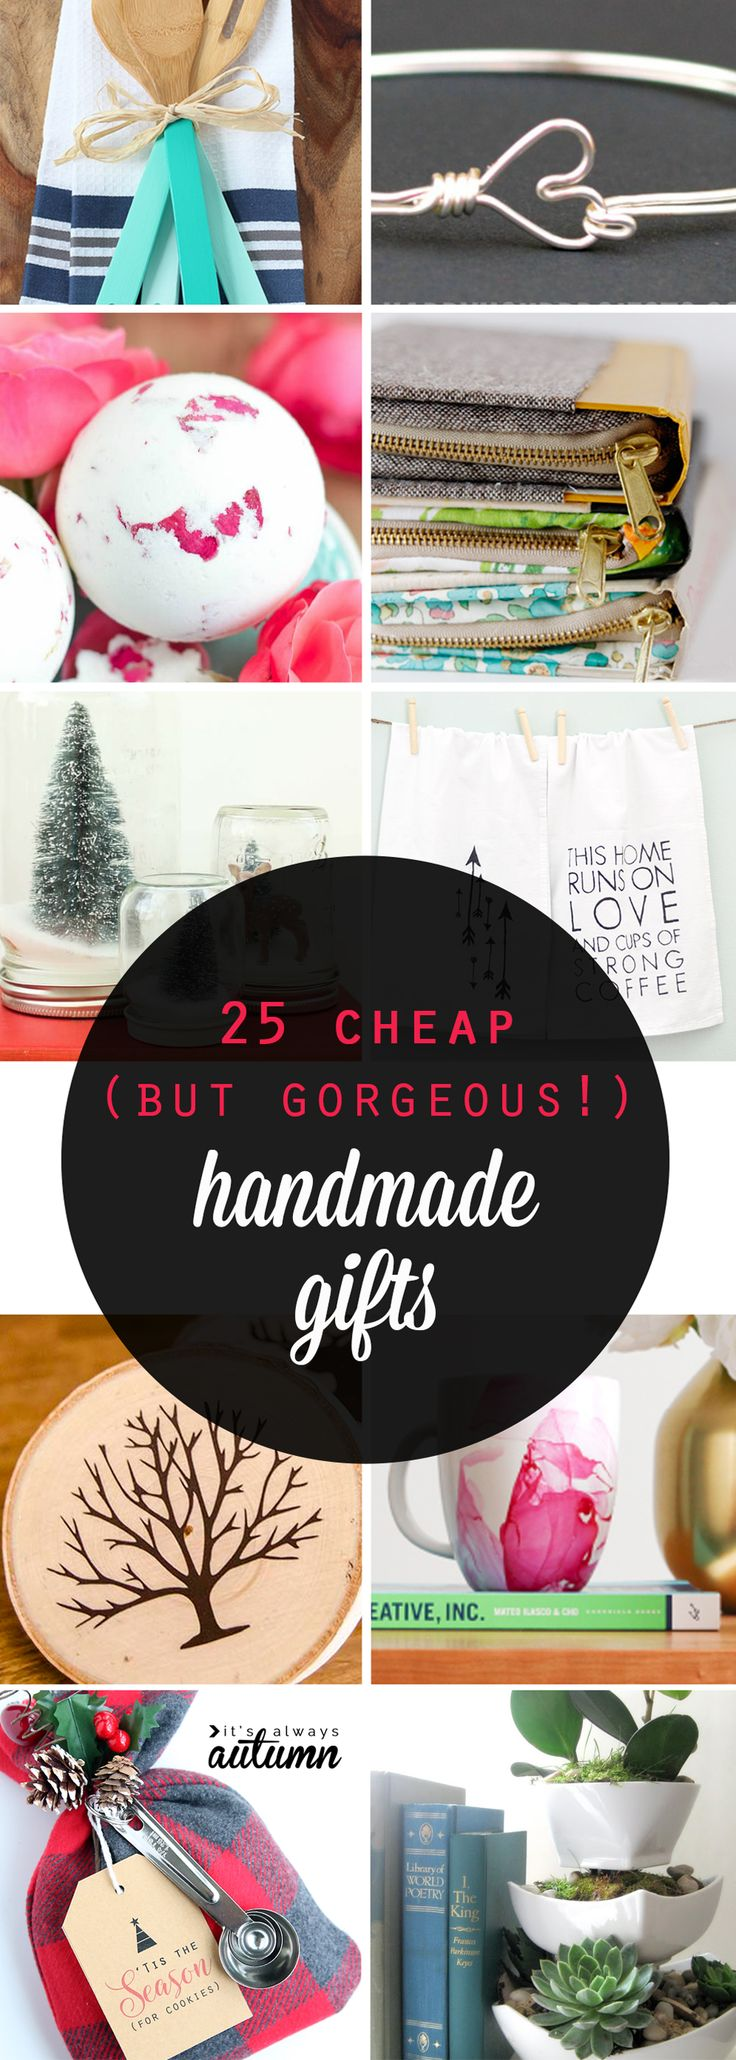 Birthday Gifts Great List Of Gorgeous Handmade That Are